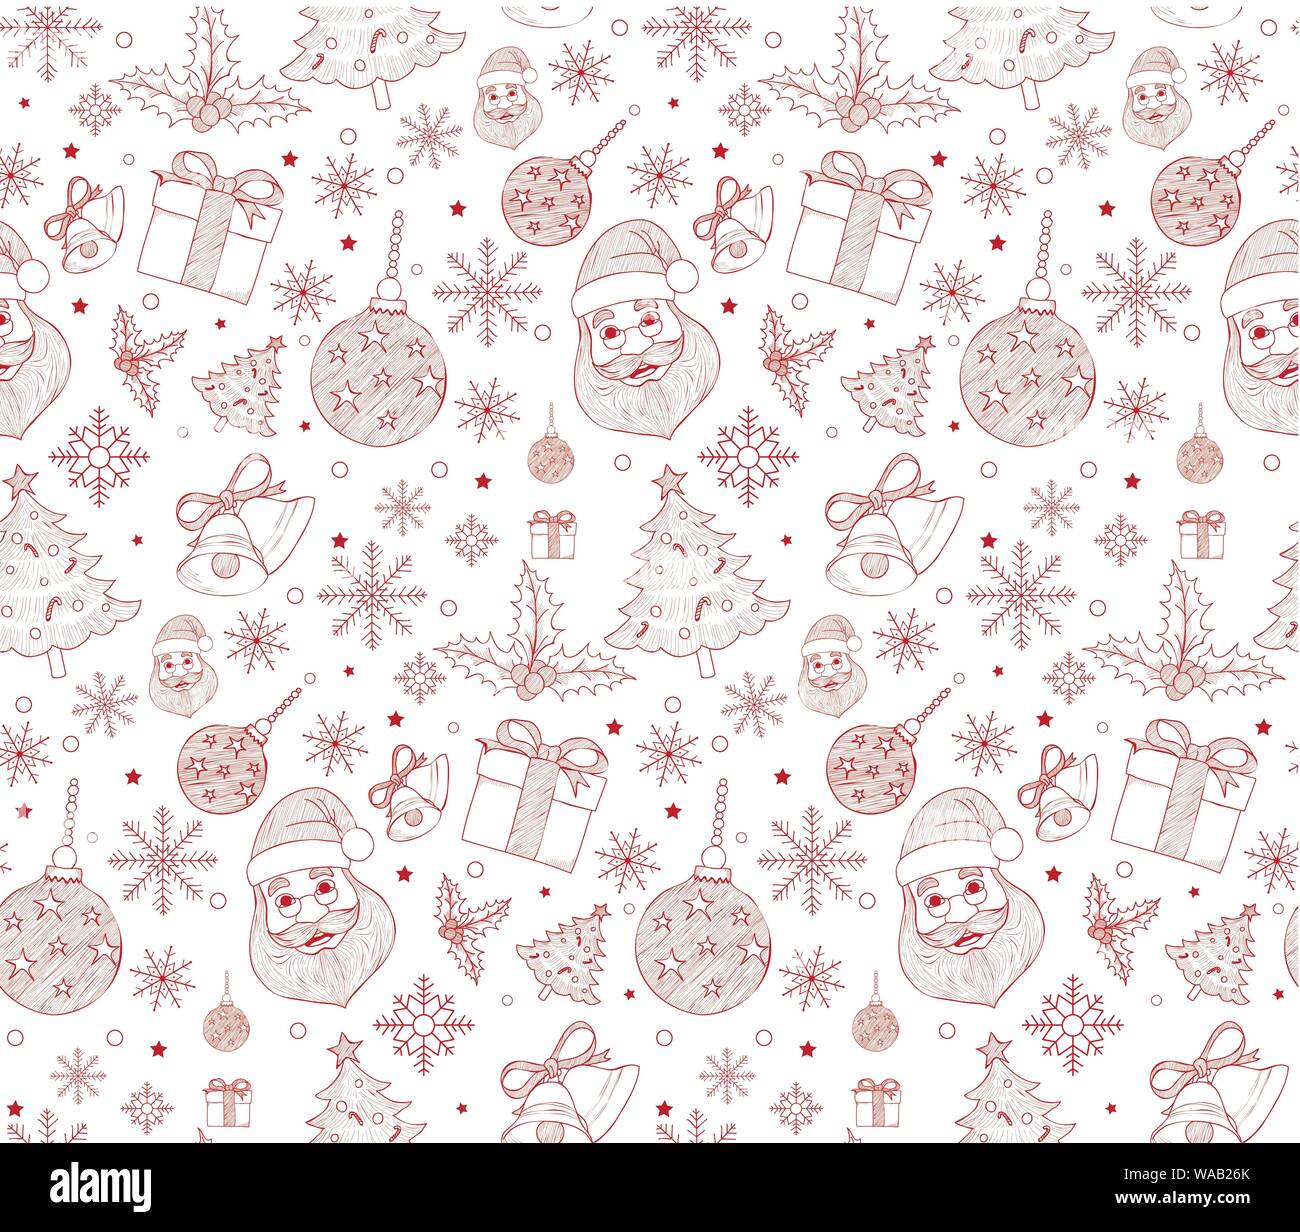 Seamless Merry Christmas Pattern Of Line Drawings With Xmas Elements Continuous Vector Illustration Stock Vector Image Art Alamy